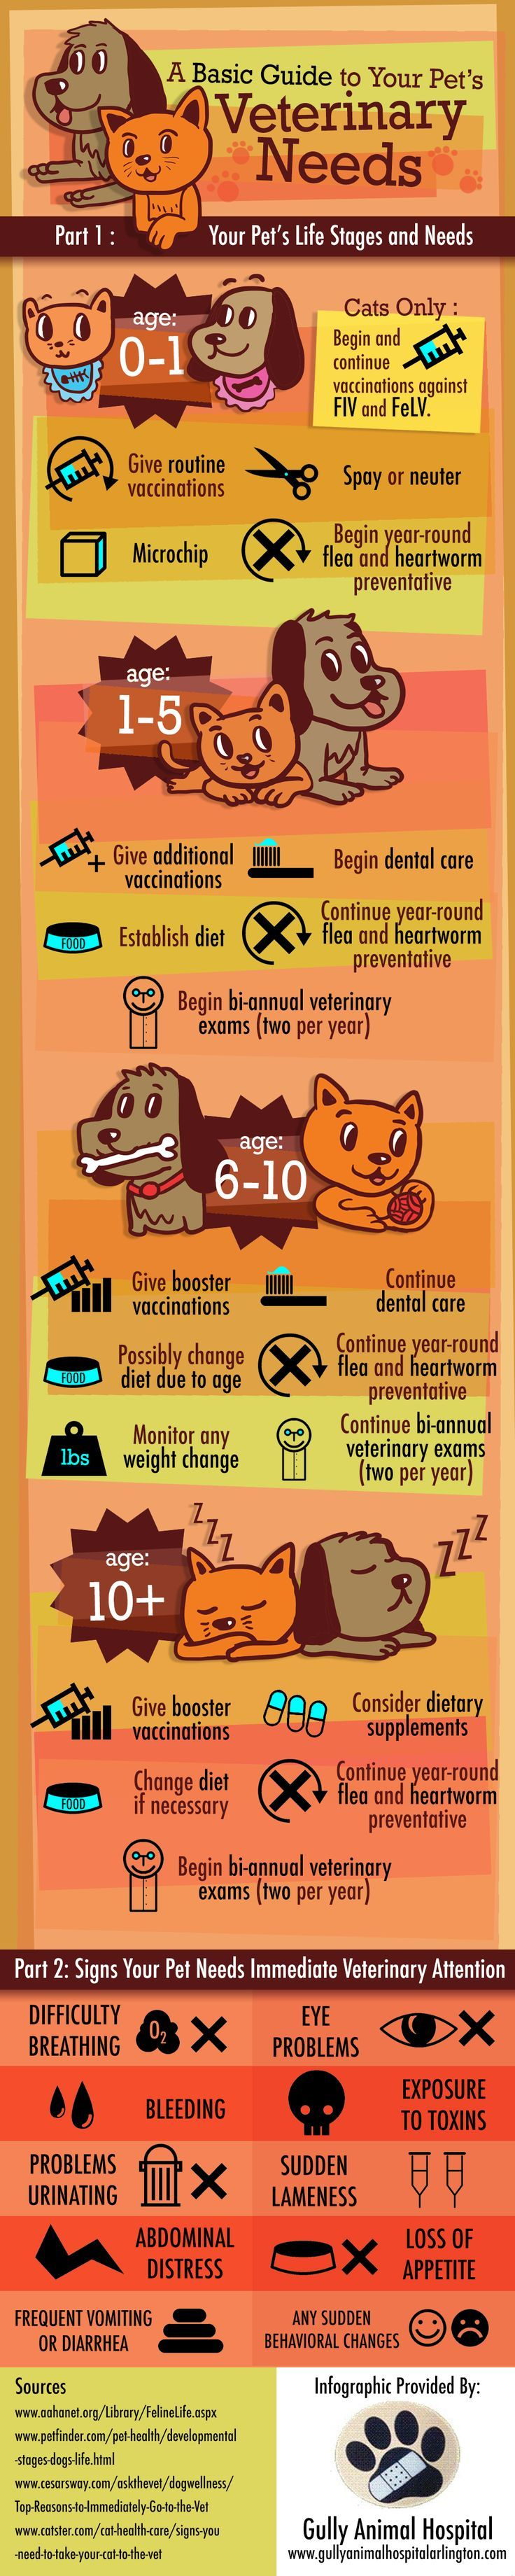 guide to you pets vet needs infographic dog and pet care